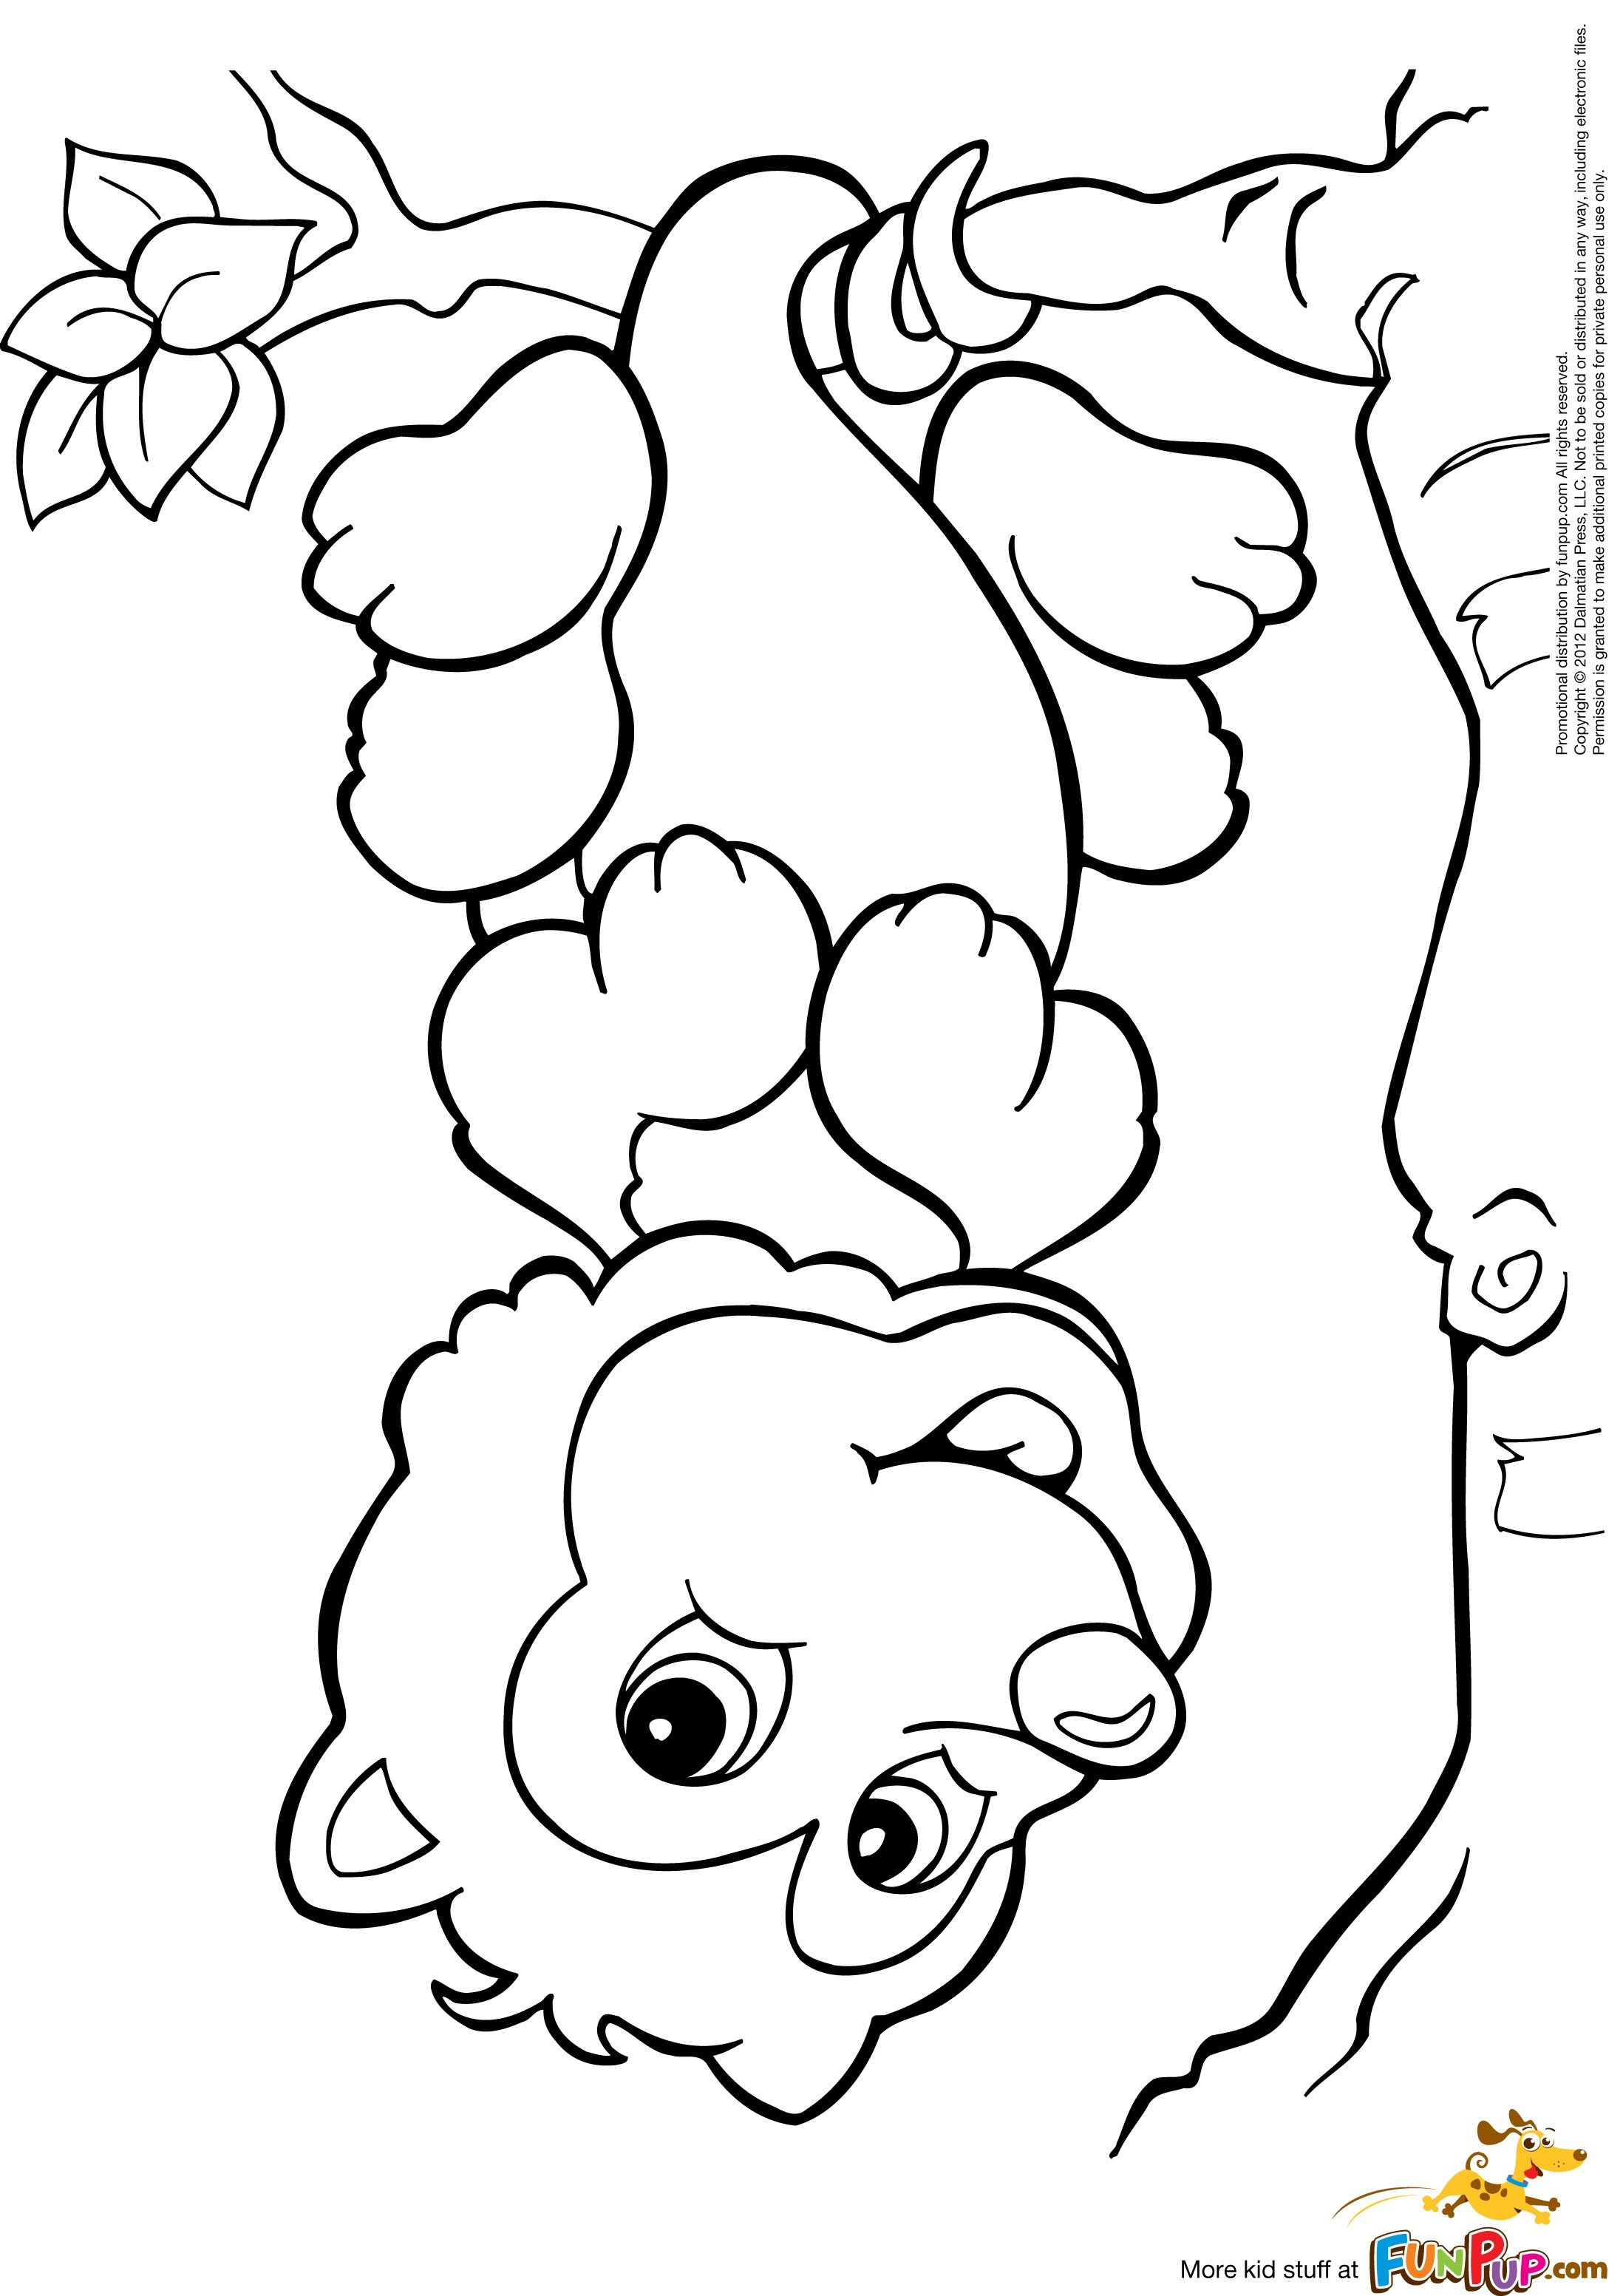 Possum Coloring Page | Free Printable Coloring Pages | Pinterest ...